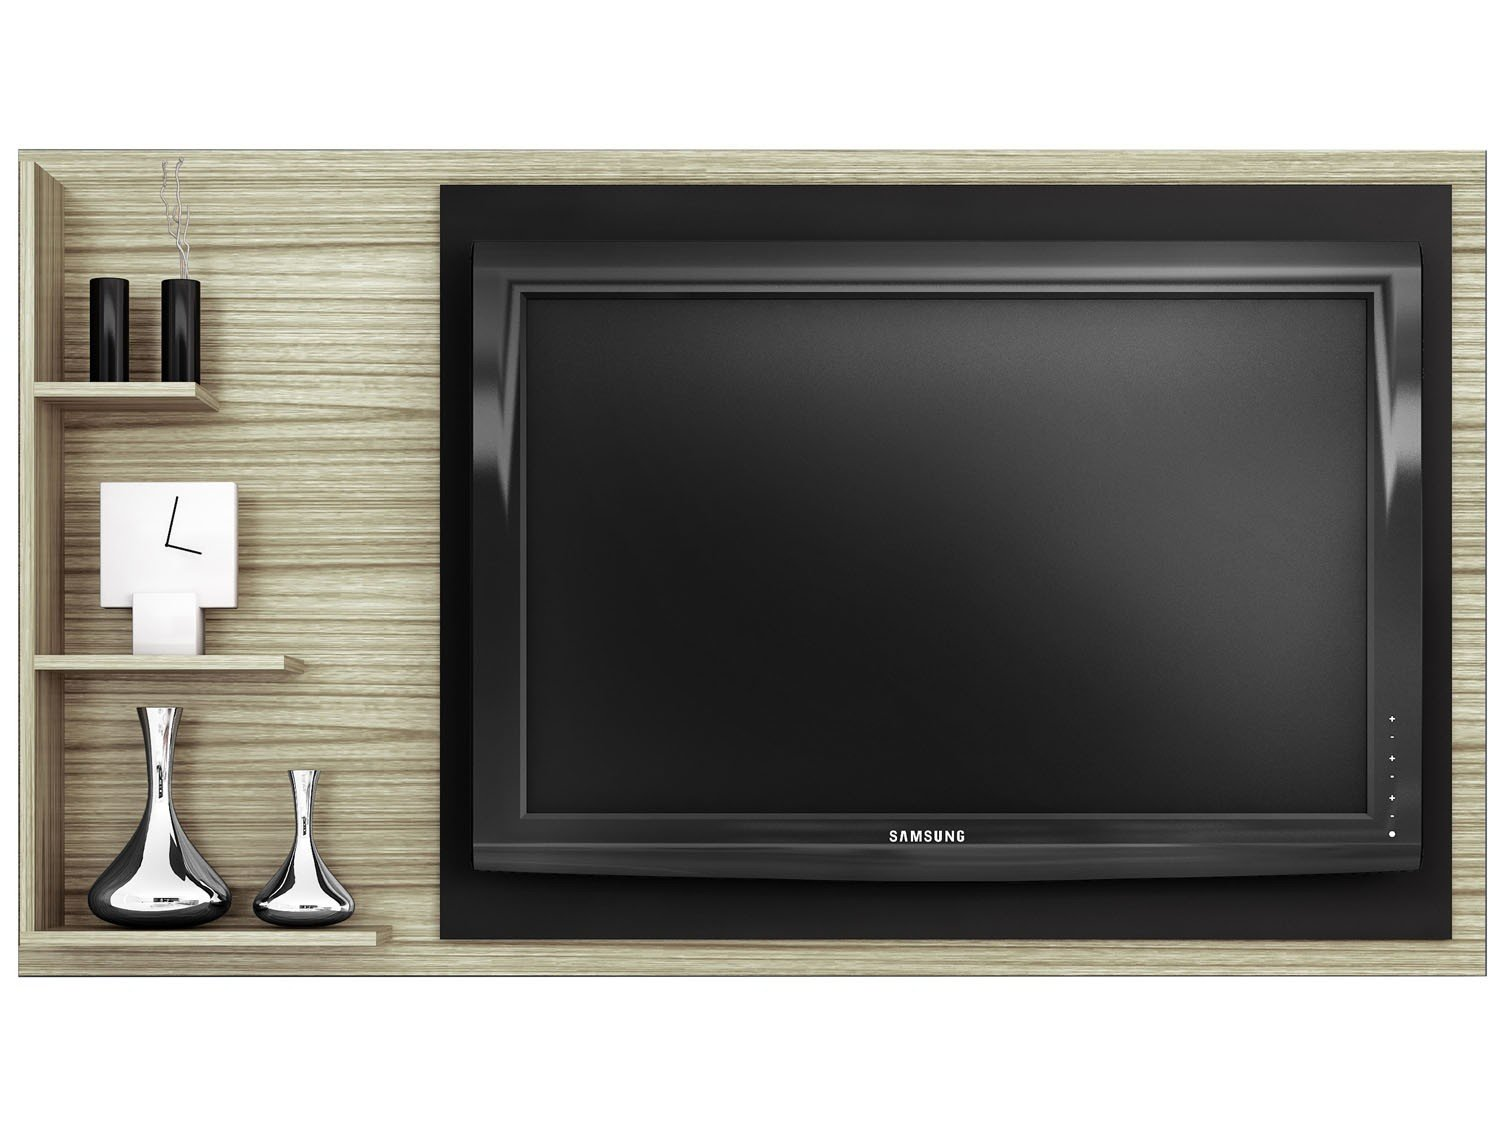 painel tv painel para tv m veis de sala pictures to pin on pinterest